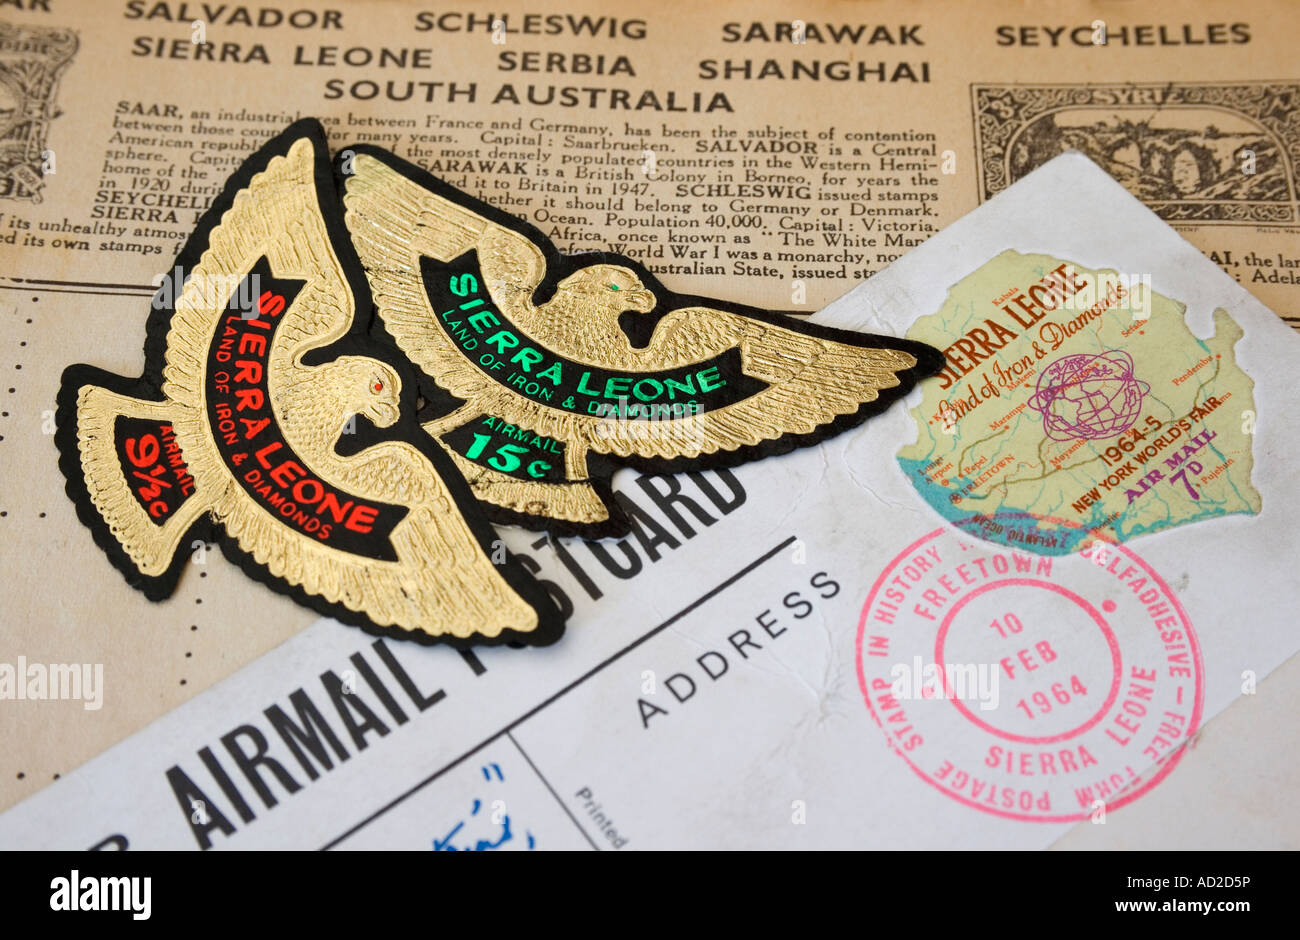 Worlds first free form self adhesive postage stamp from Sierra Leone with two eagle shaped Sierra Leone stamps - Stock Image